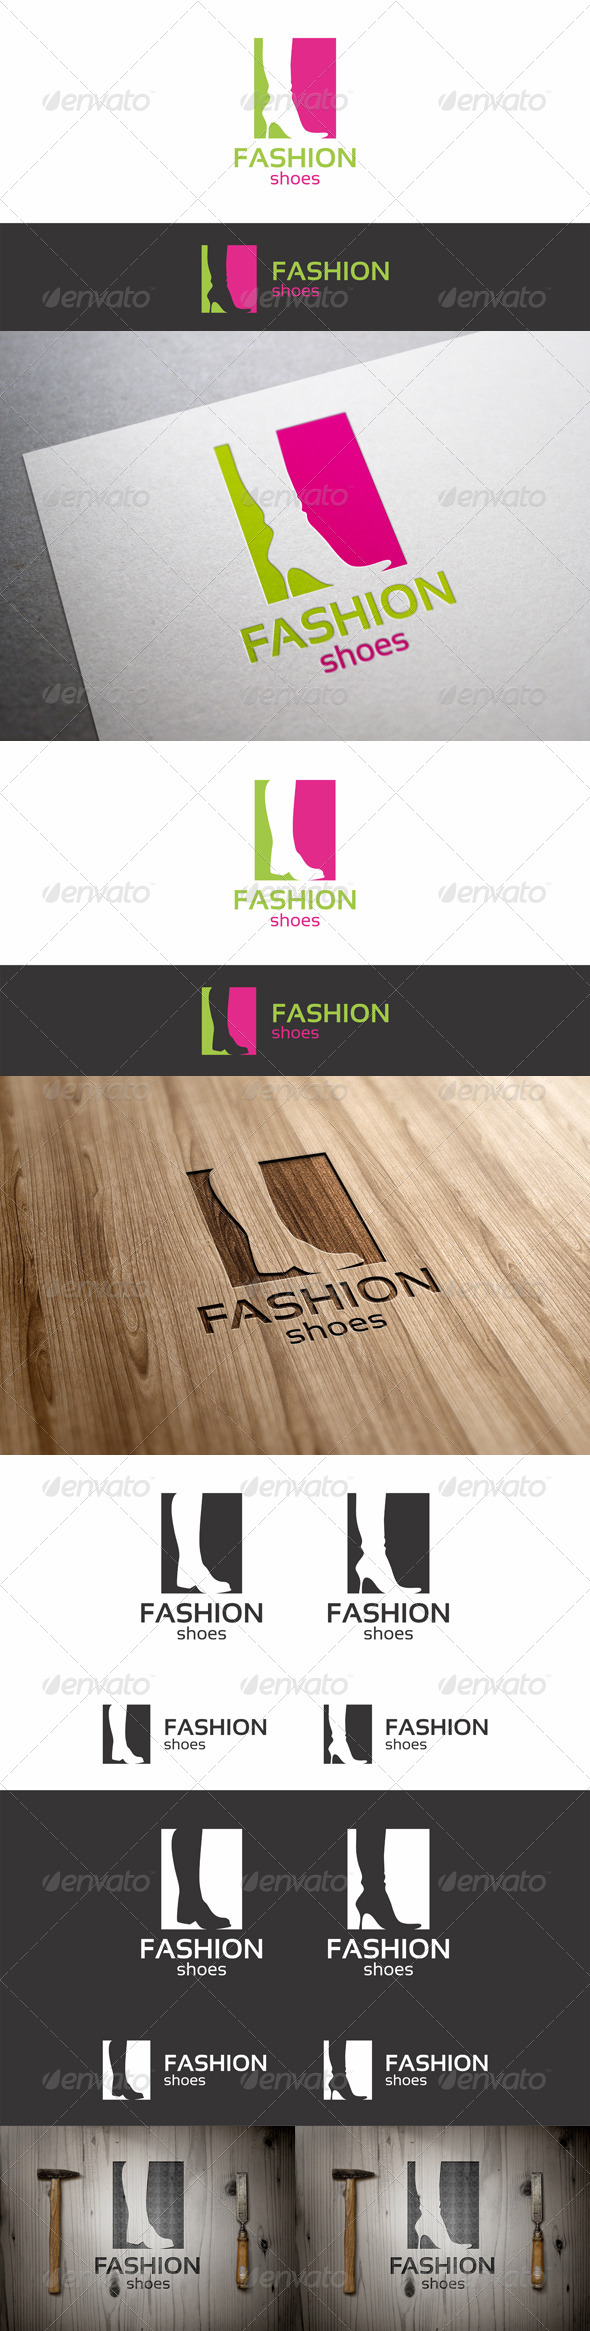 Fashion Shoes Logo for Mens and Womens - Vector Abstract